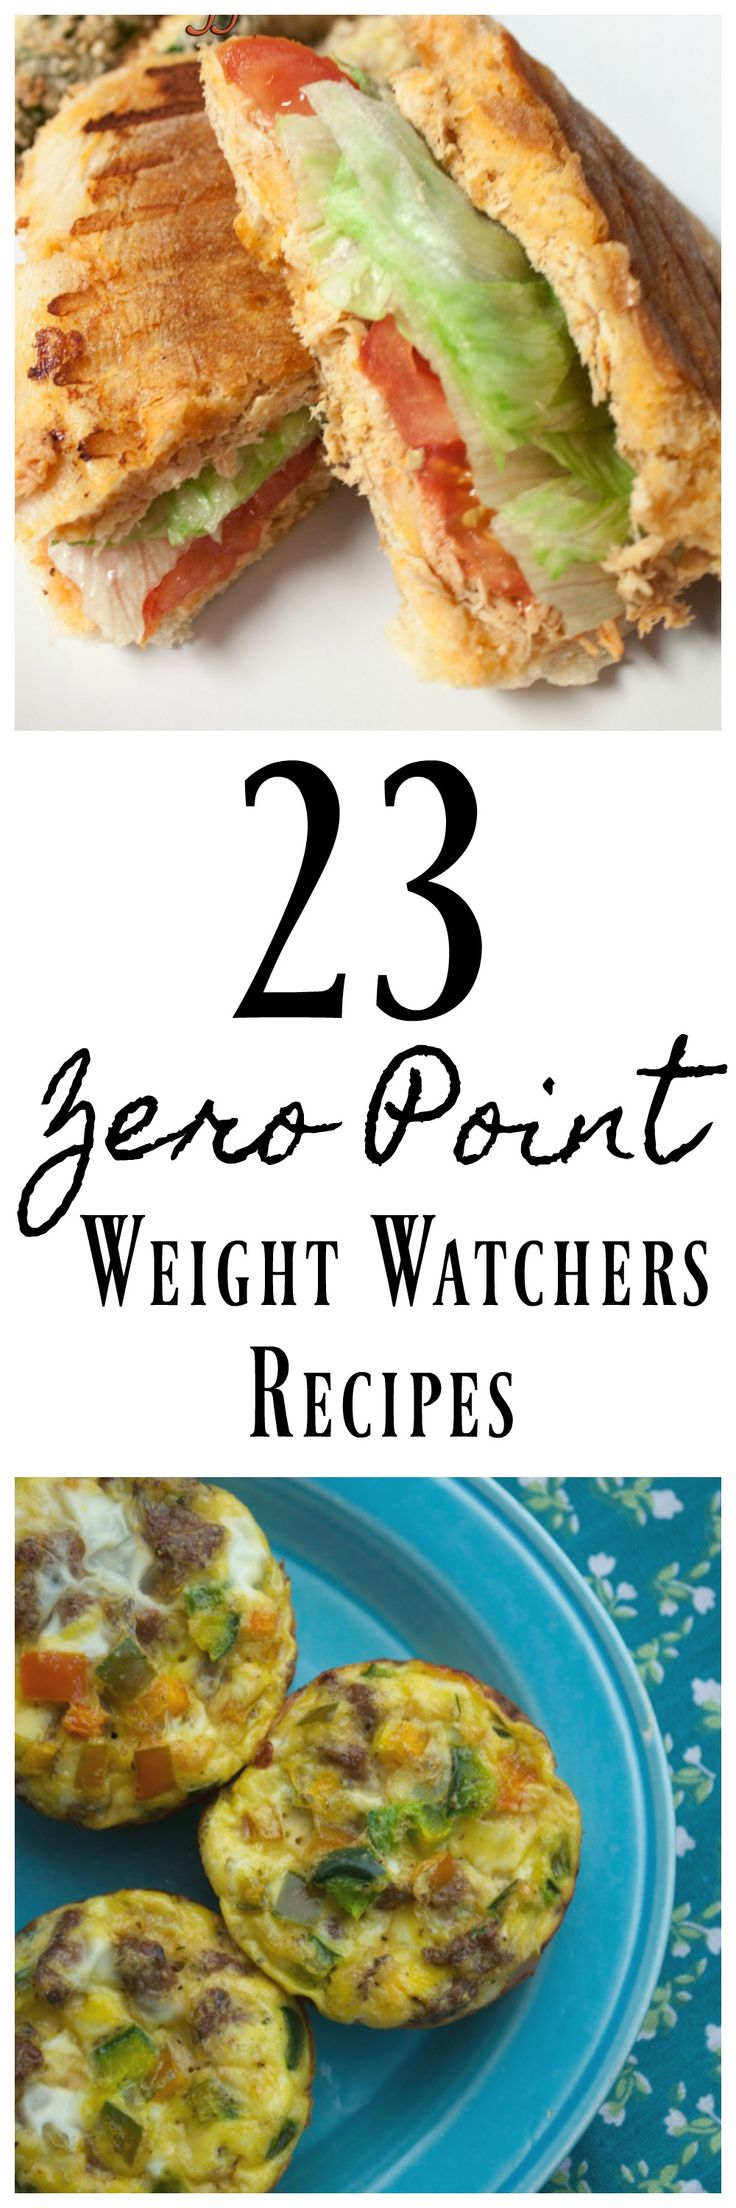 These Zero Point Weight Watchers Recipes are perfect for anyone doing Weight Watchers. All 21 recipes have no points and they are tasty too!